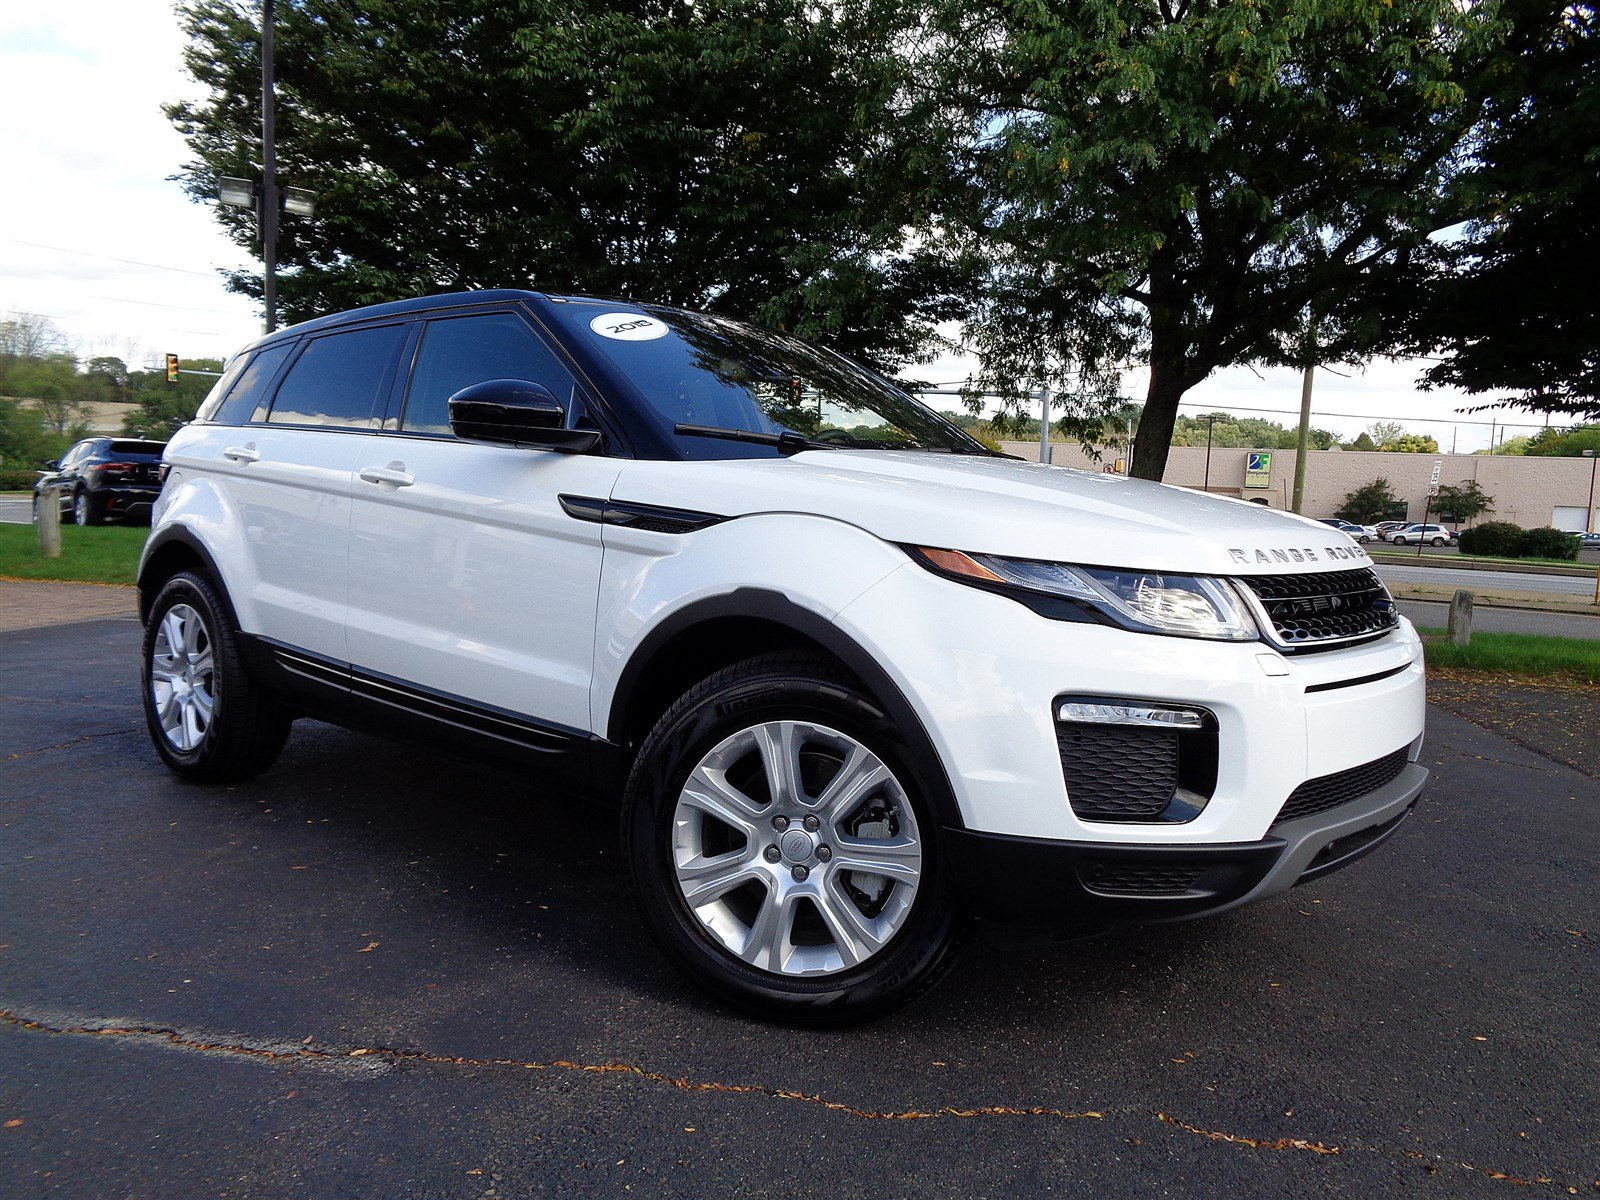 2018 Land Rover Range Rover Evoque SE With Navigation & 4WD